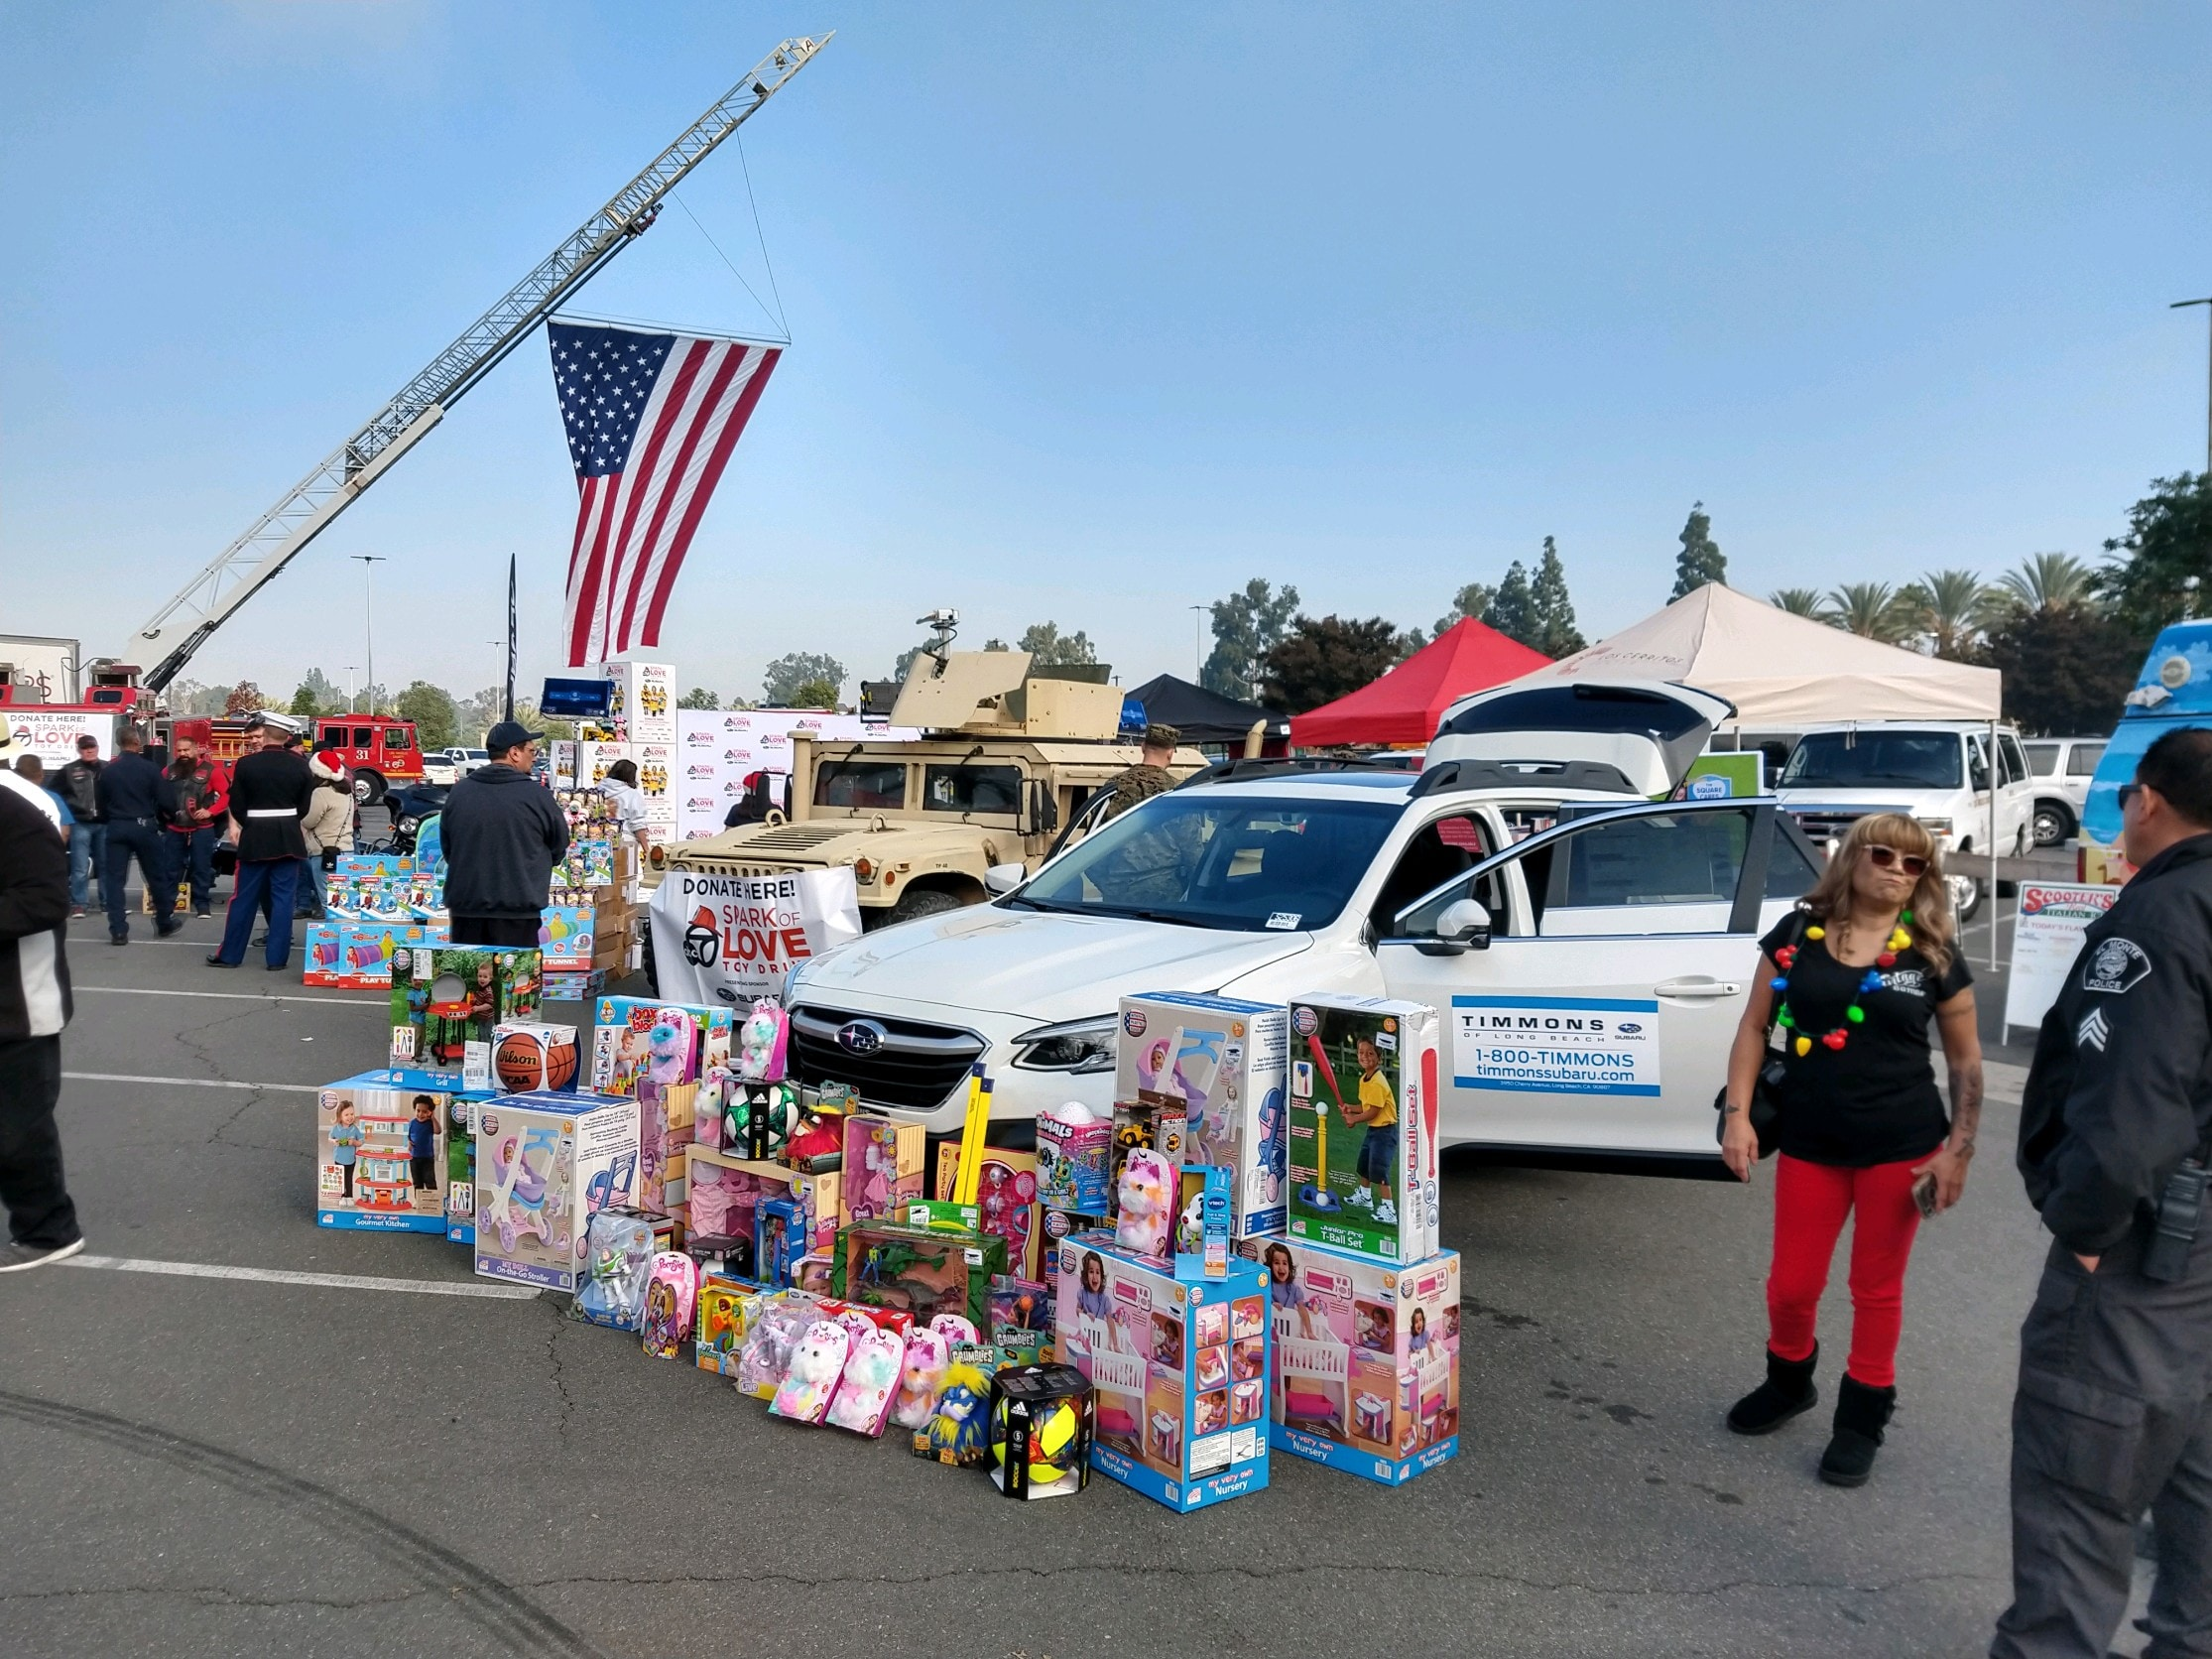 Timmons of Long Beach proudly supports and participates in the ABC7 Spark of Love Charity Toy Drive Event presented by Subaru